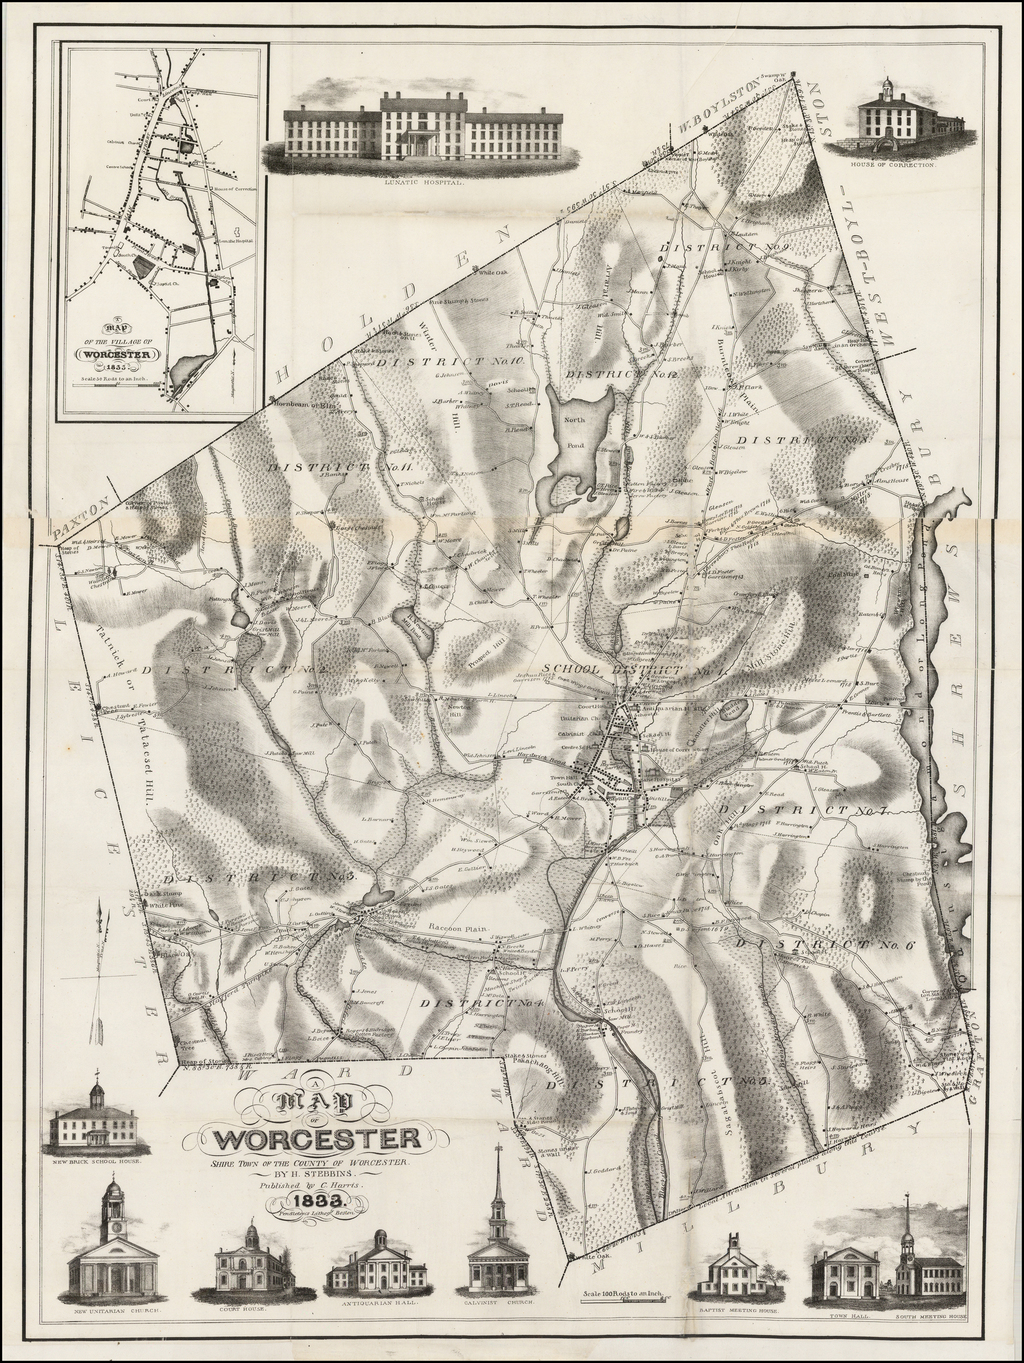 A Map of Worcester shire Town of the County of Worcester. By H. Stebbins.   Published by C. Harris.  1883. By Henry S. Stebbins